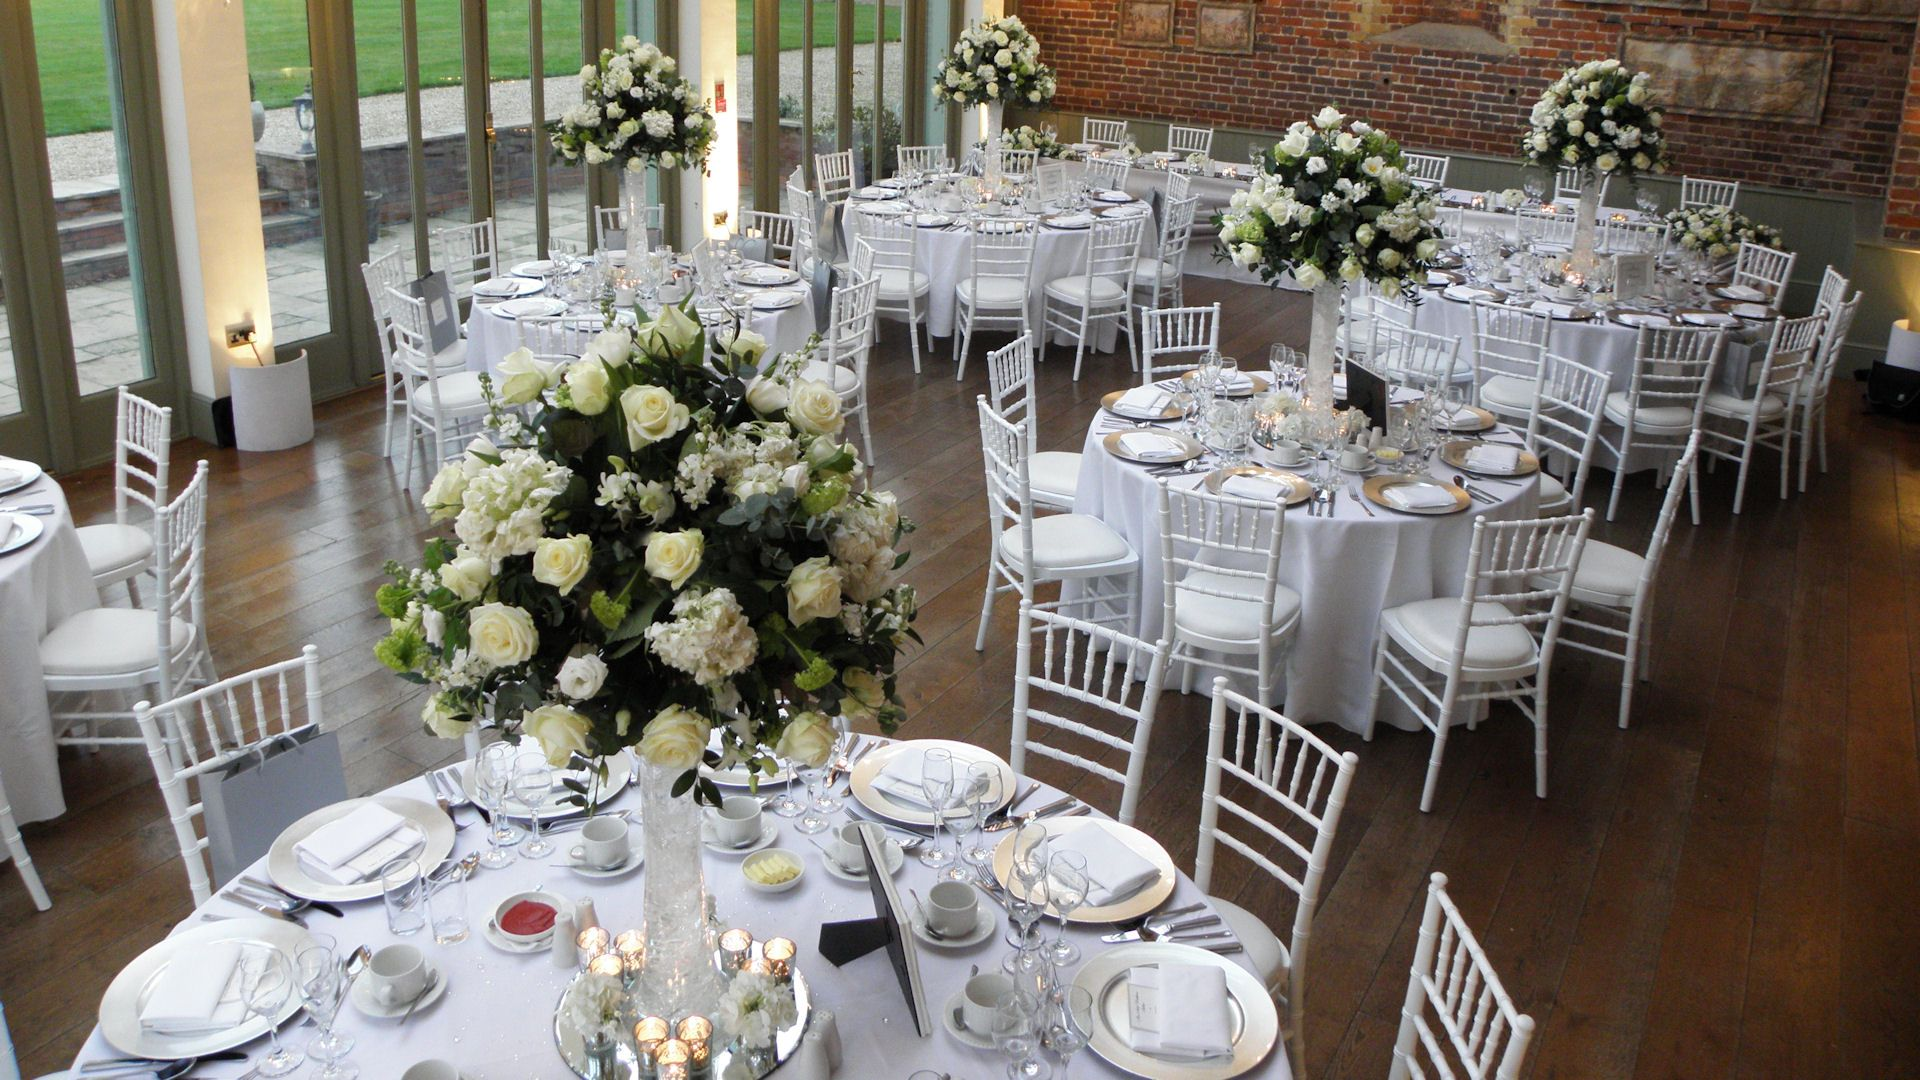 Chairs Wedding Hall Dark Brown Leather Dining White At Offley Place With Chiavari